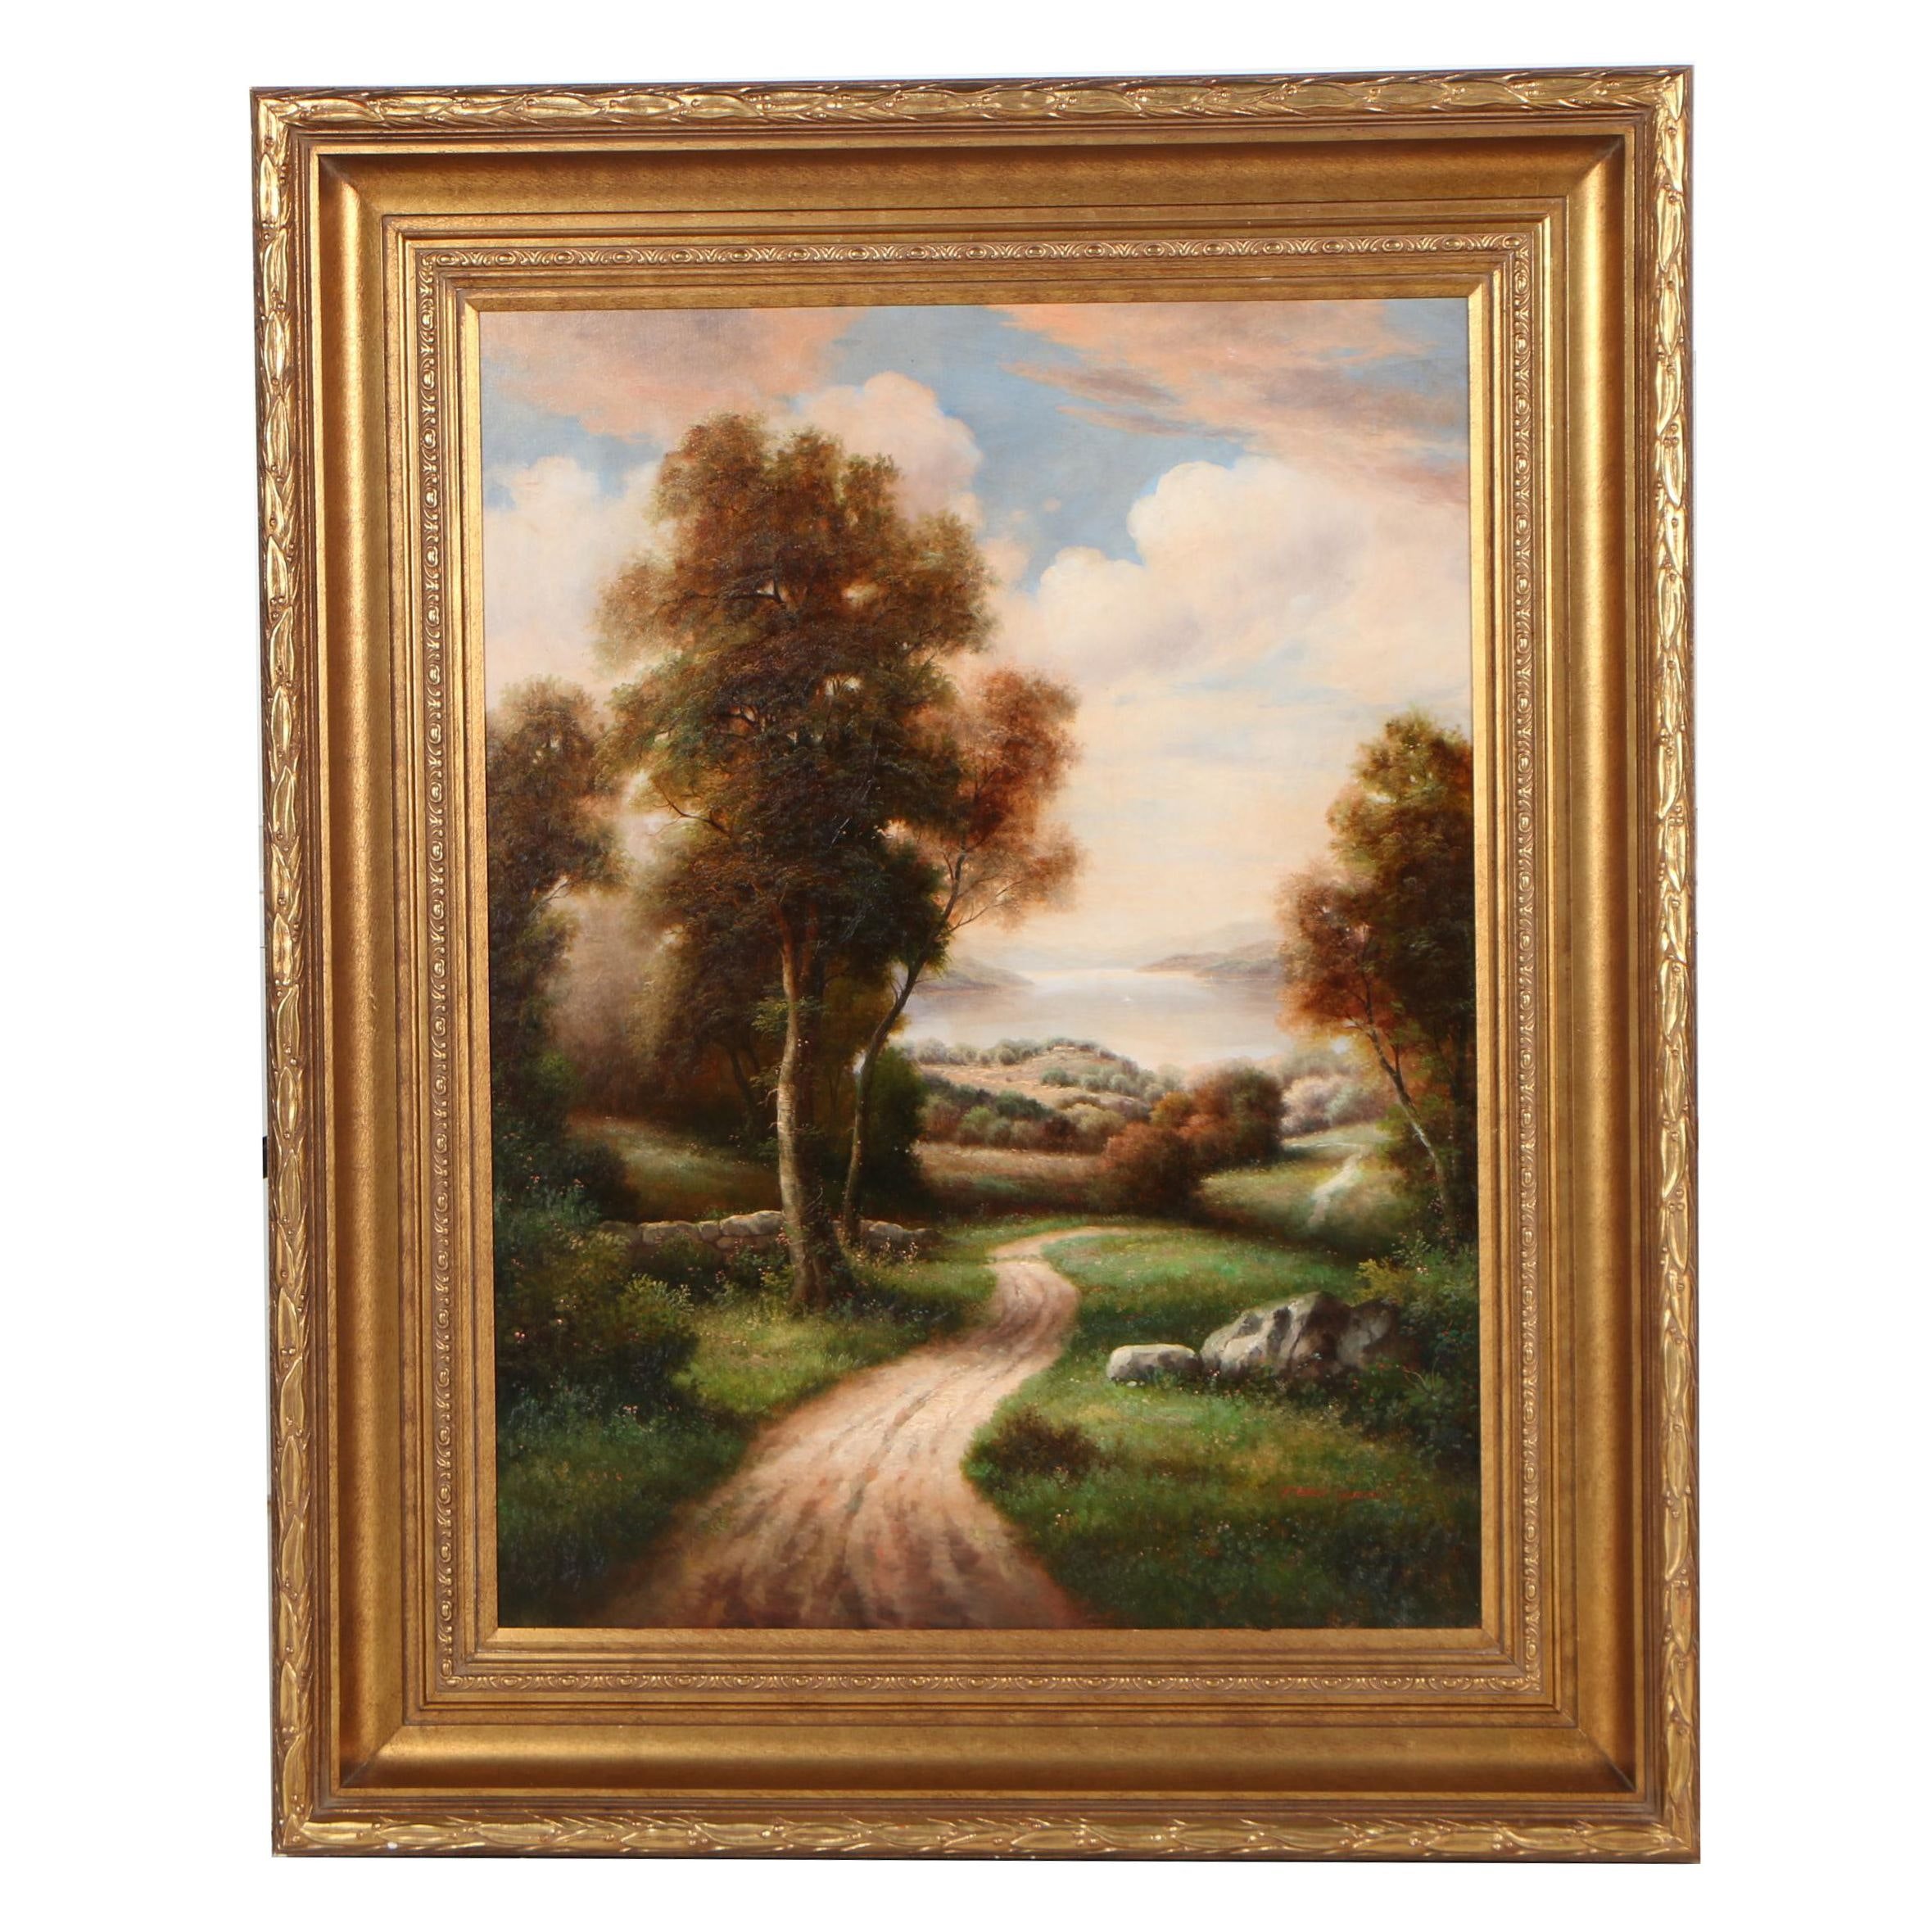 Peter Green Oil Painting of Rural Landscape